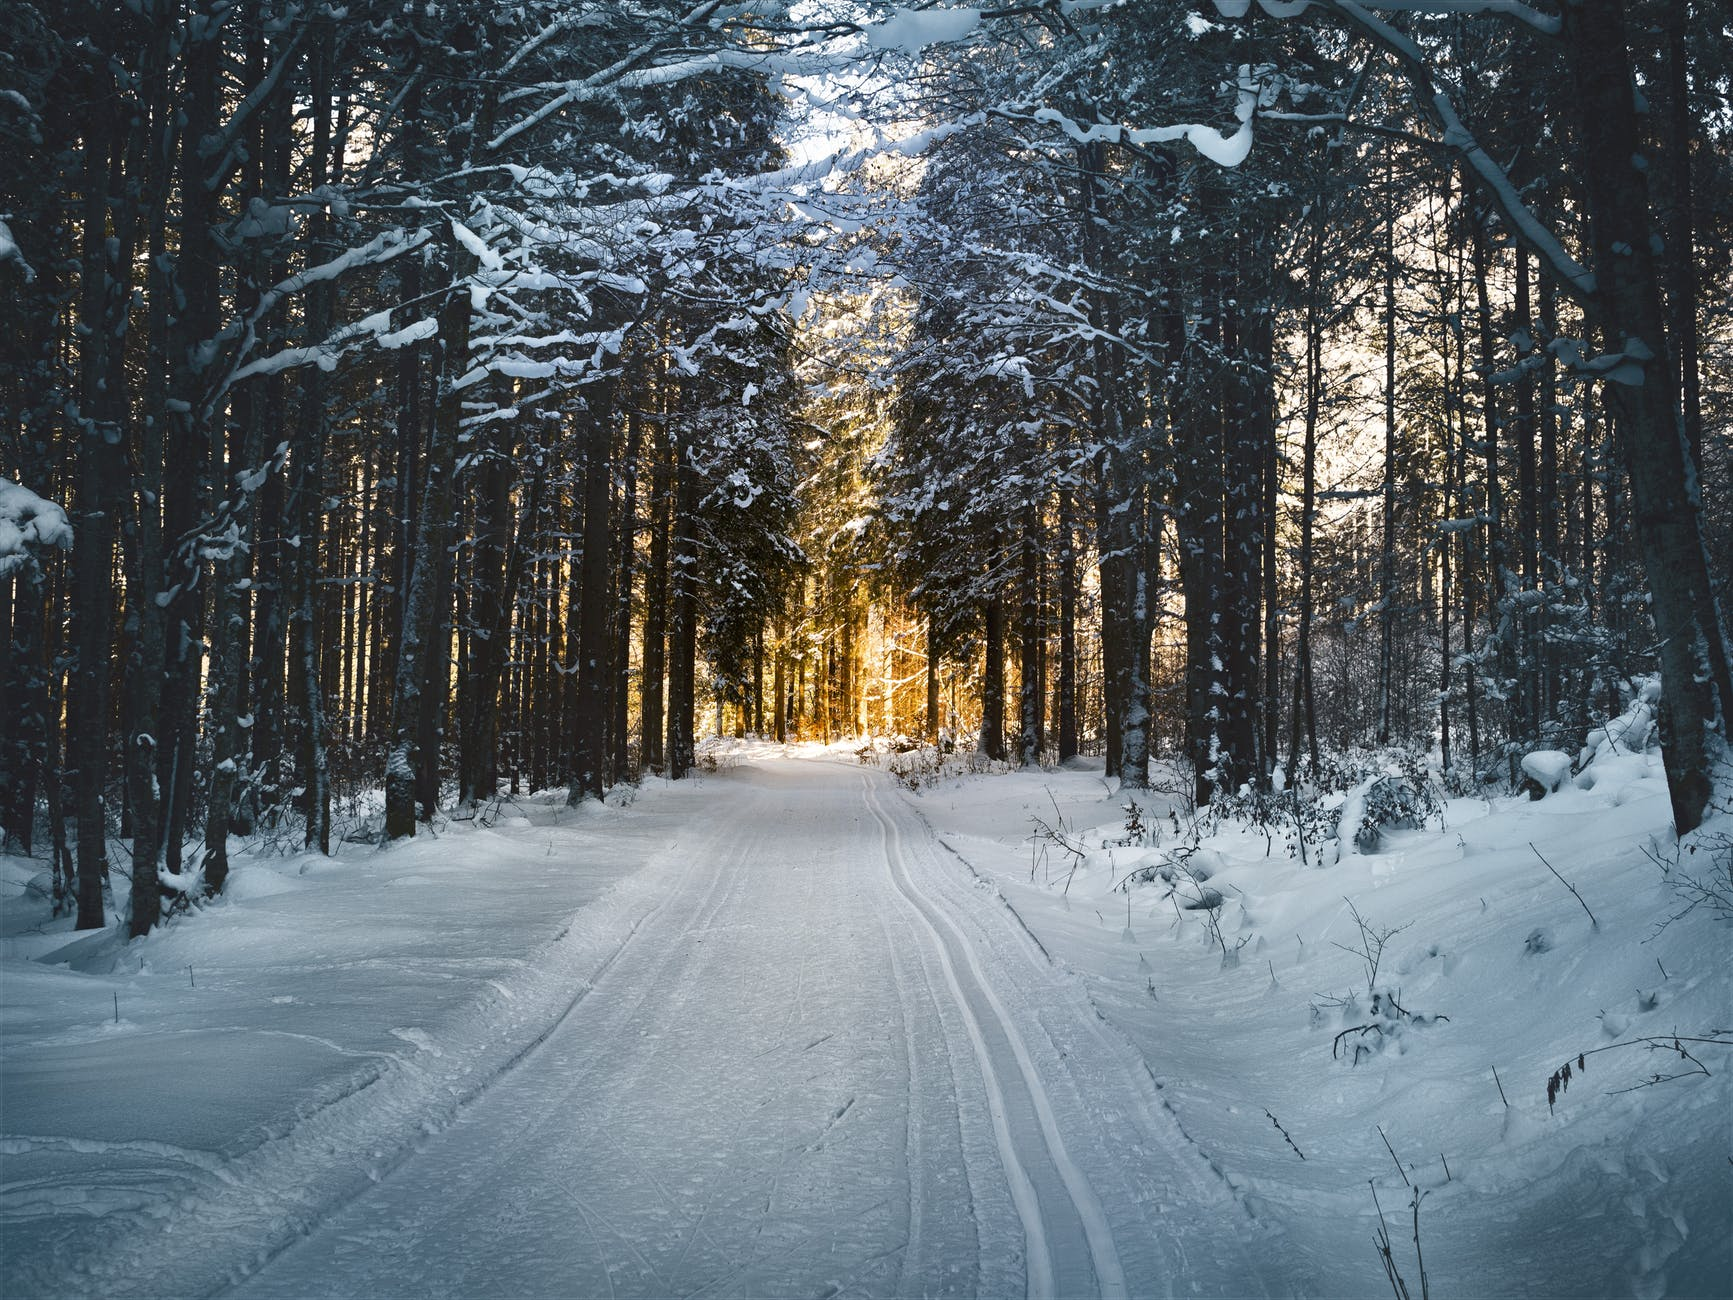 landscape photography of snow pathway between trees during winter